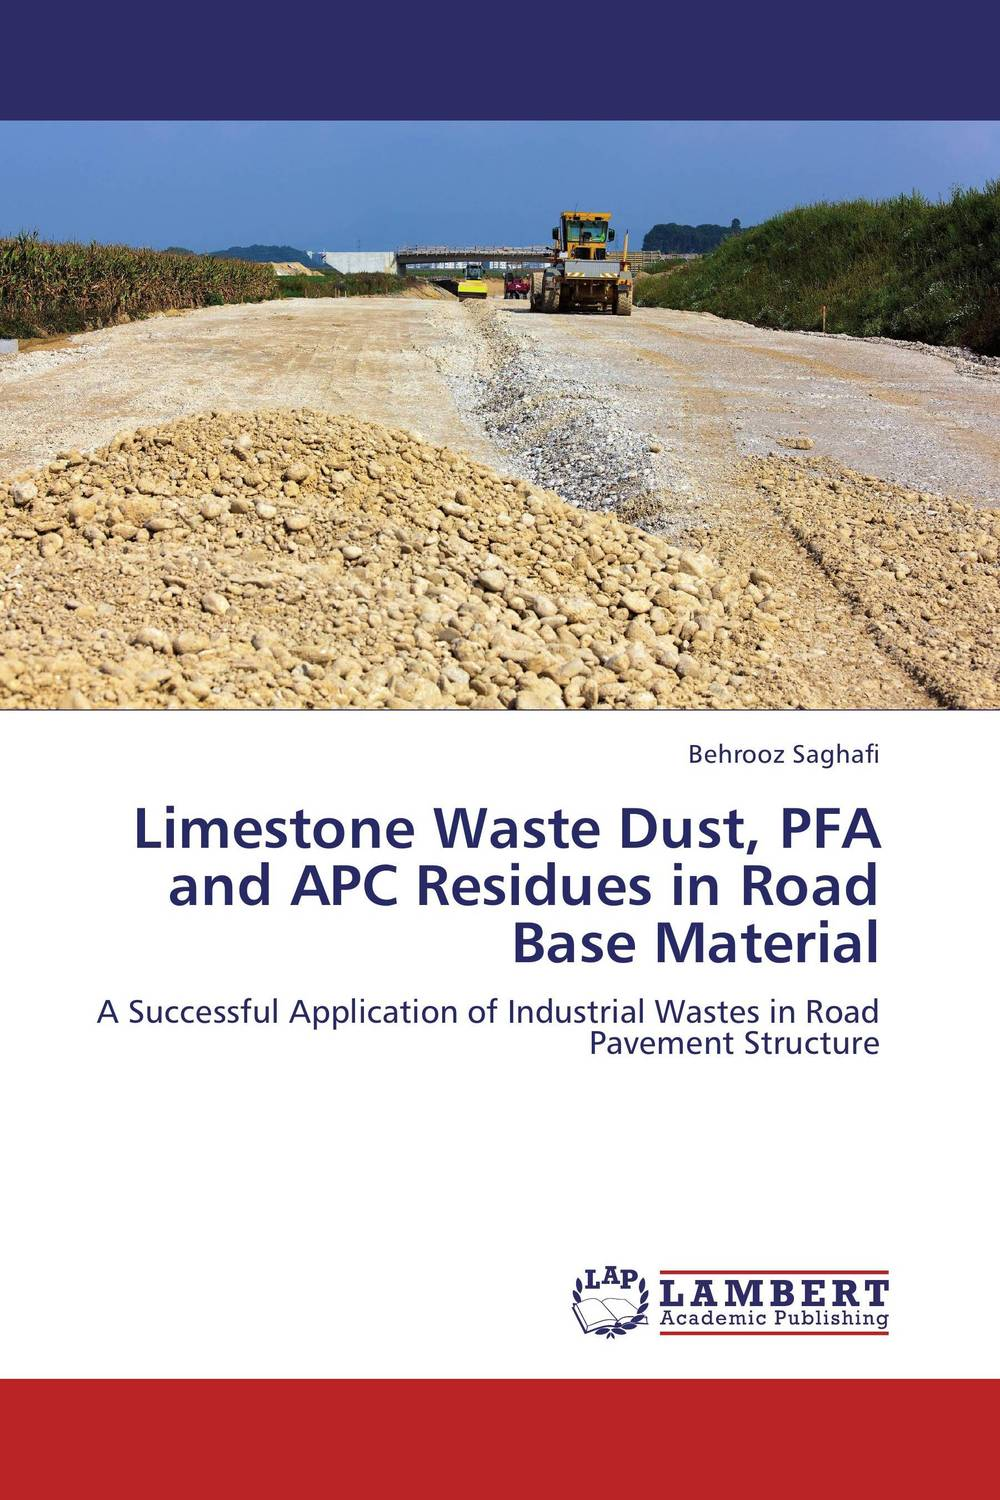 Limestone Waste Dust, PFA and APC Residues in Road Base Material amal owis and yasser el tahlawy residues and wastes biomass in egypt